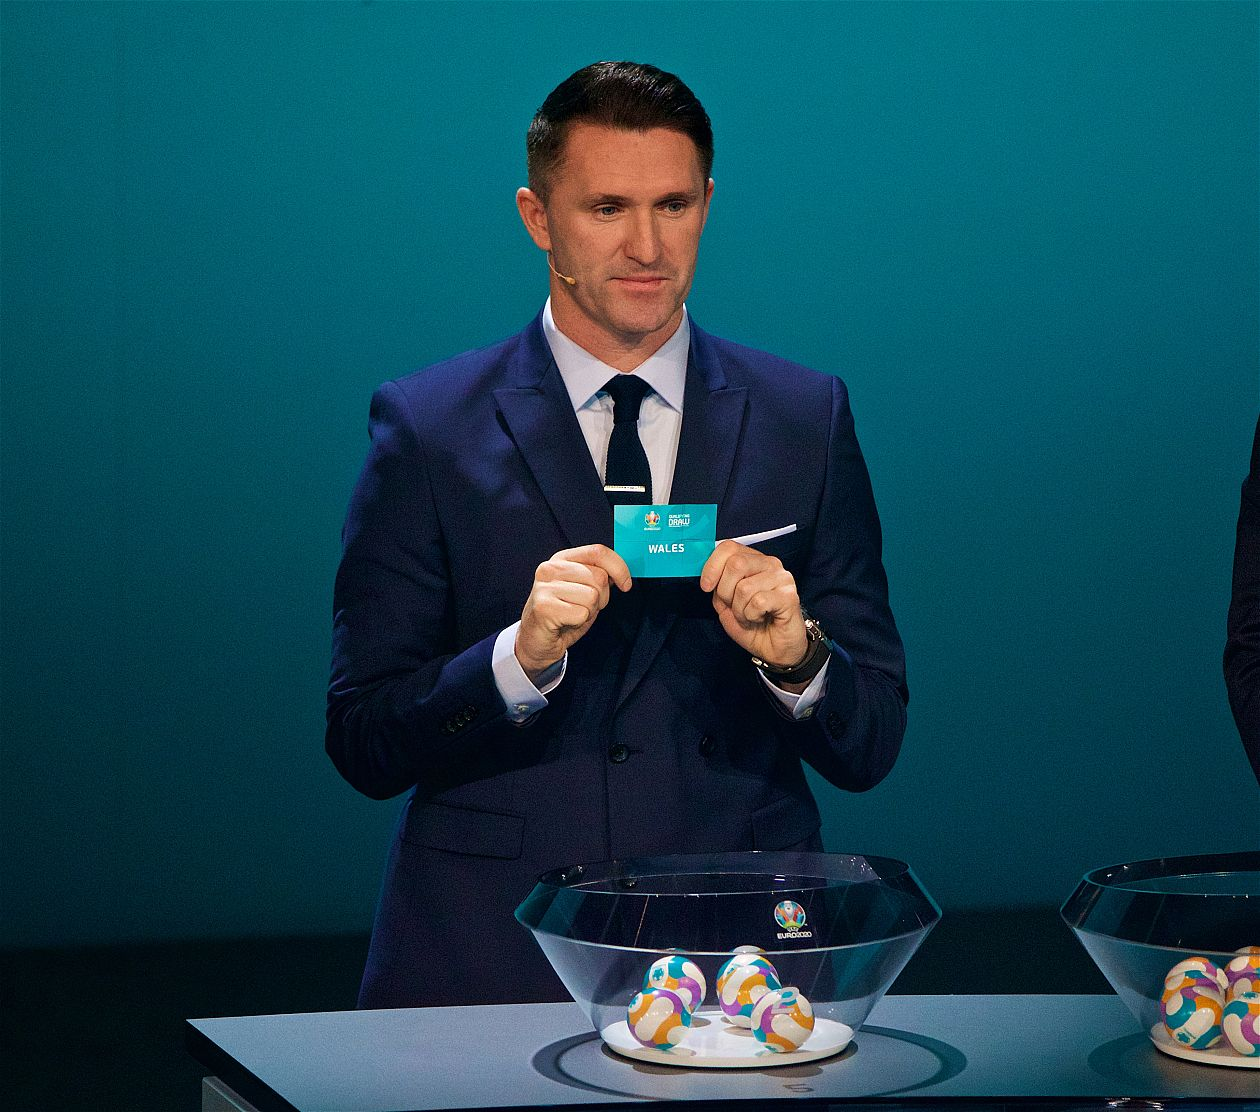 Robbie Keane draws Wales into Group E at the EURO 2020 Qualifying Draw in the Republic of Ireland.